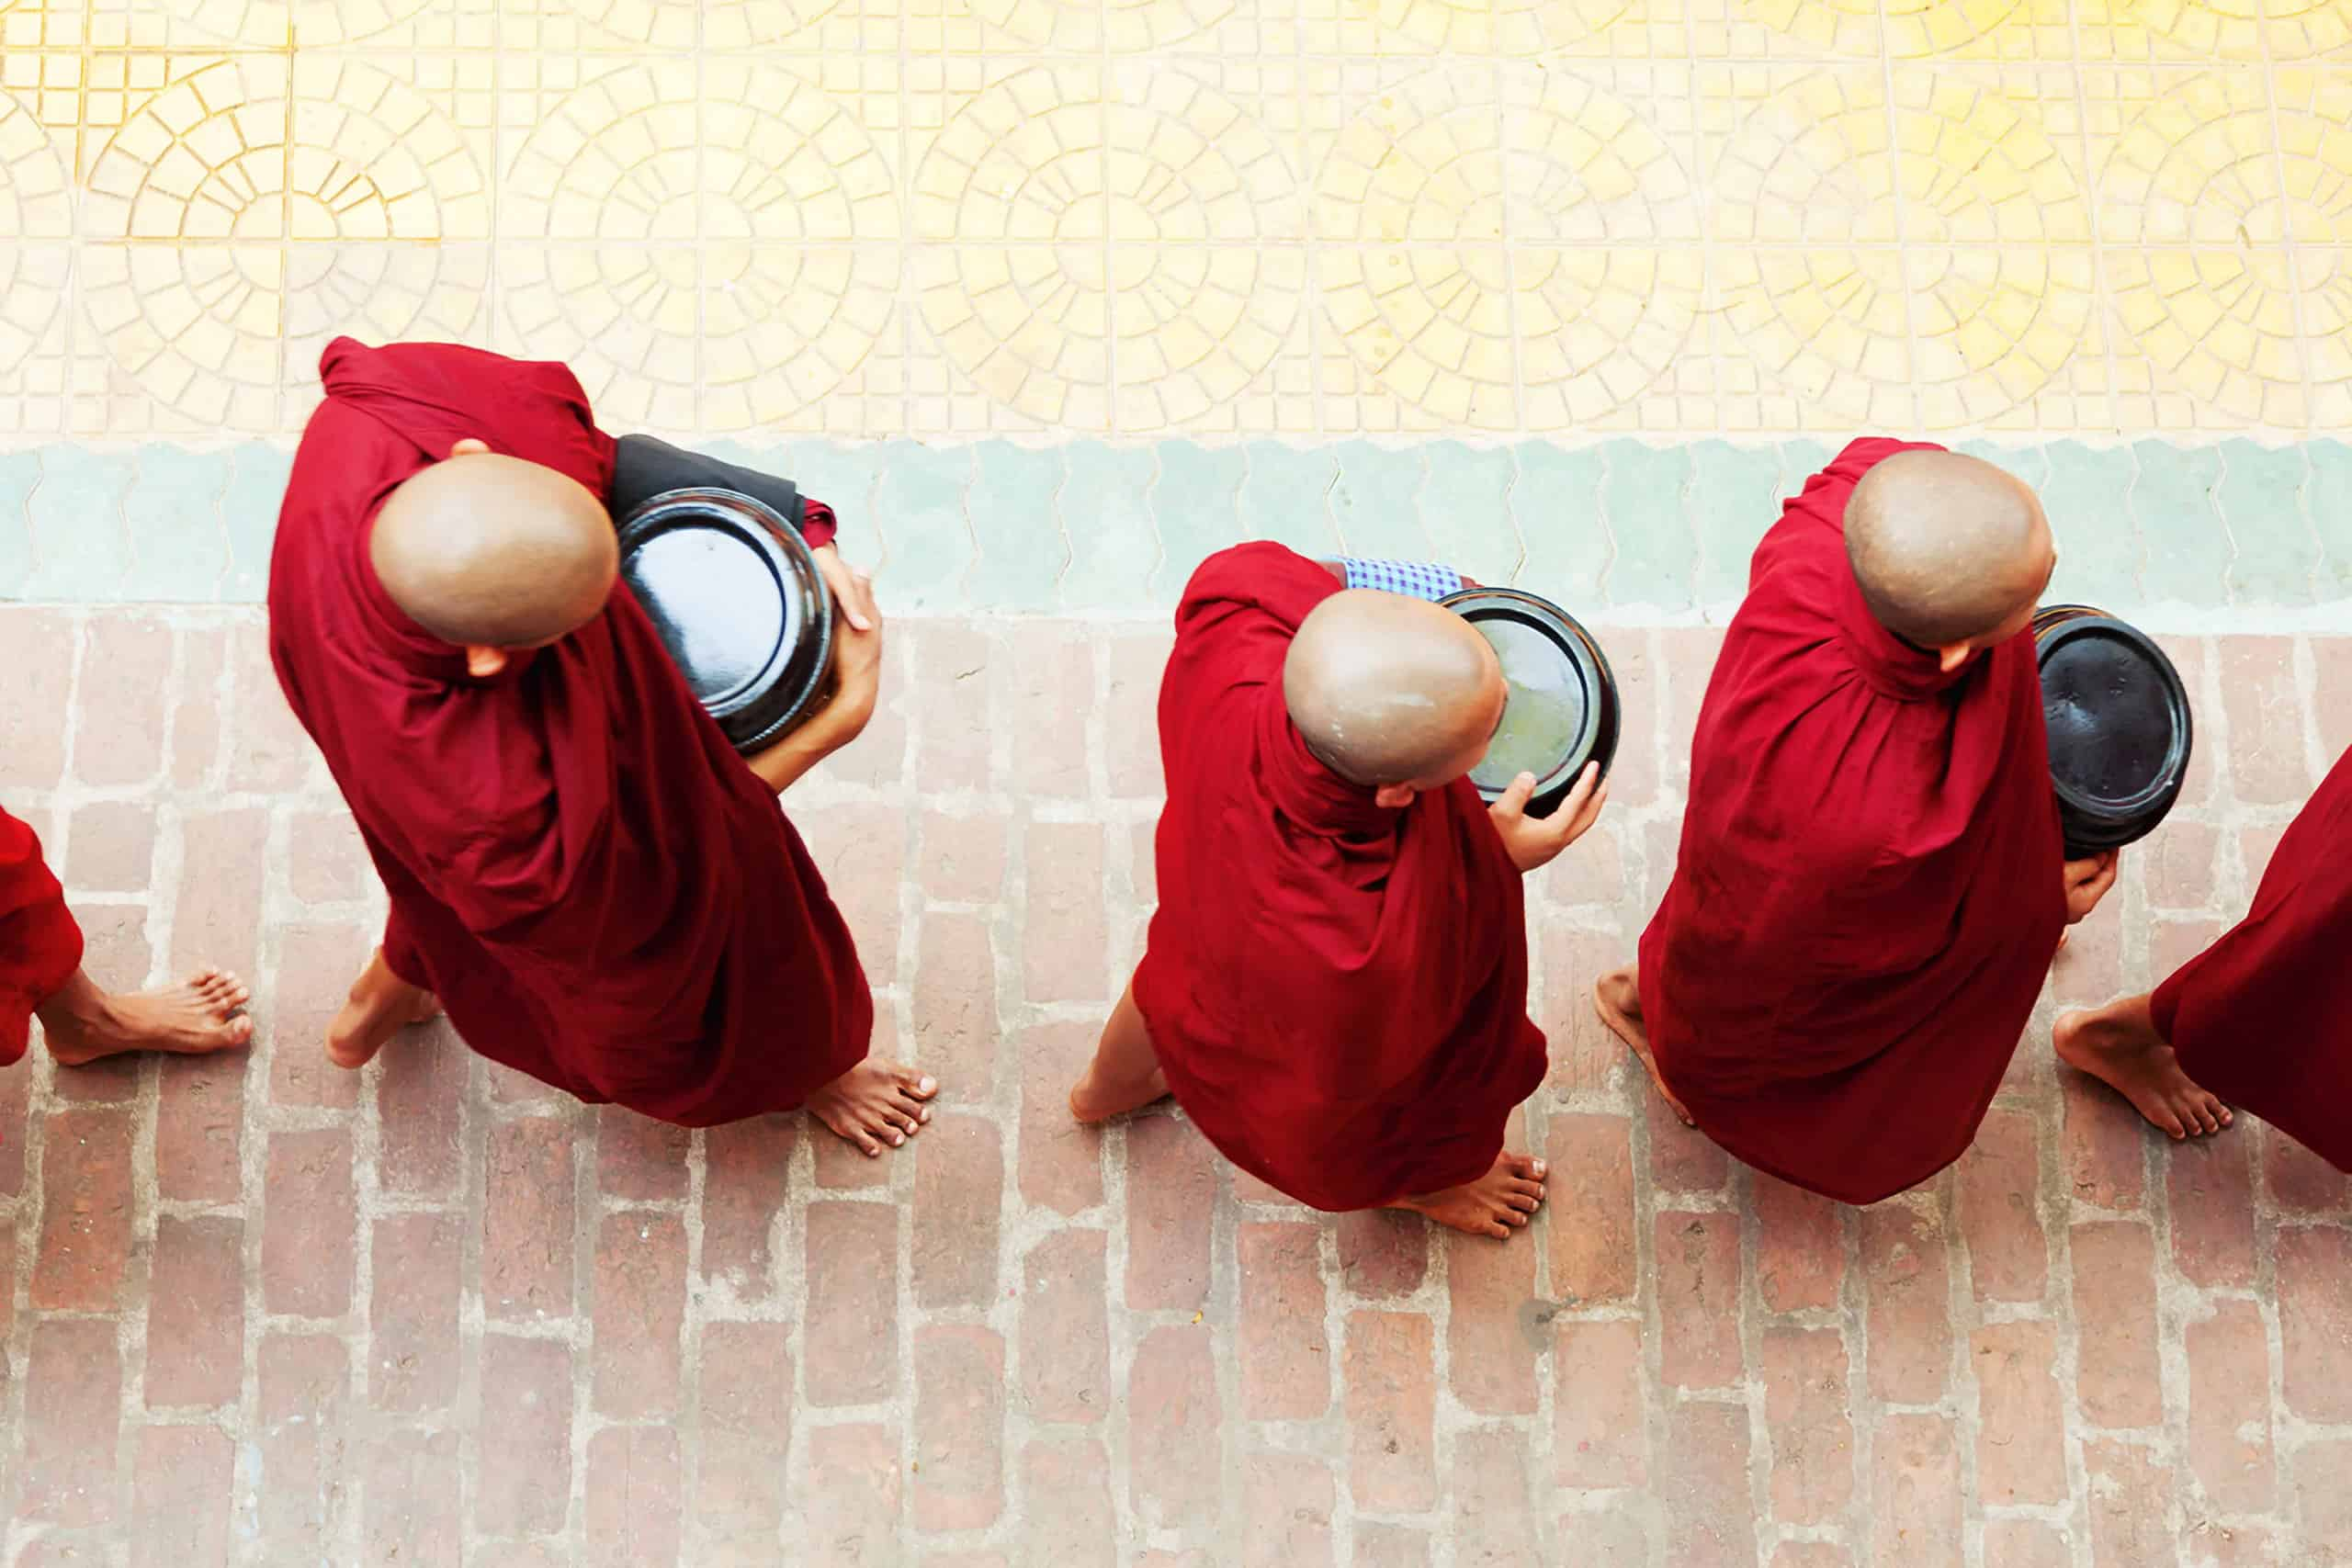 Monks in red robes